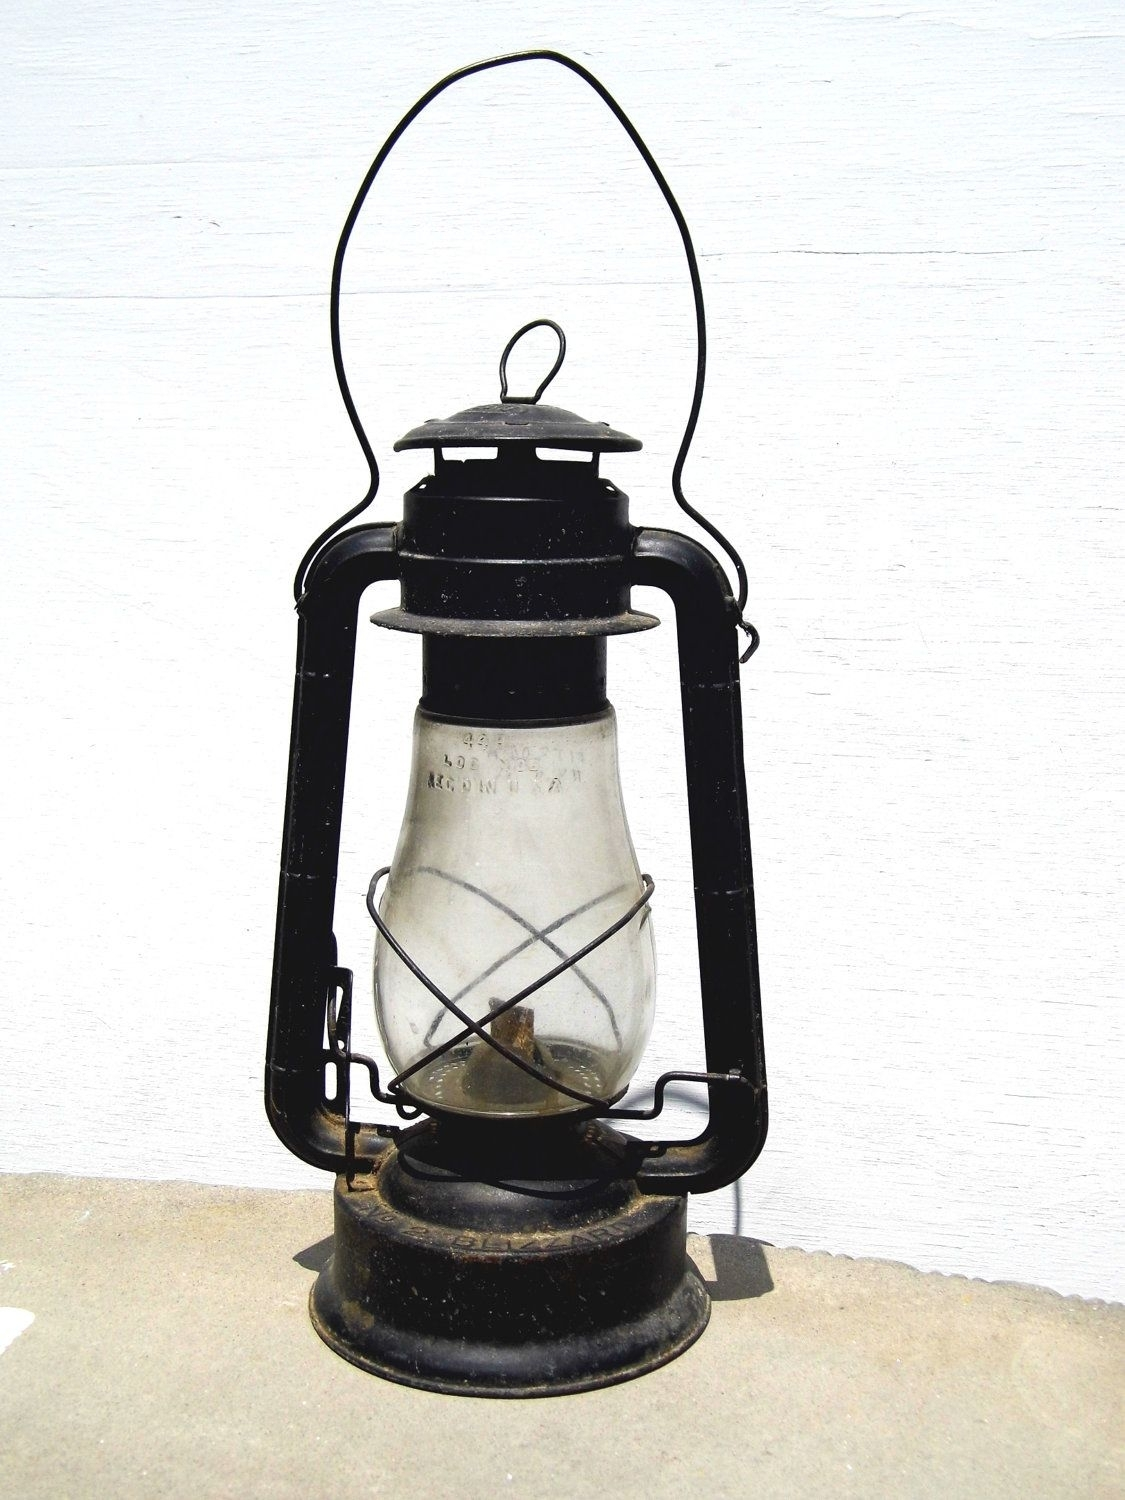 Dietz Lantern, Vintage Lantern, Railroad Lantern, Antique Lantern in Outdoor Railroad Lanterns (Image 7 of 20)